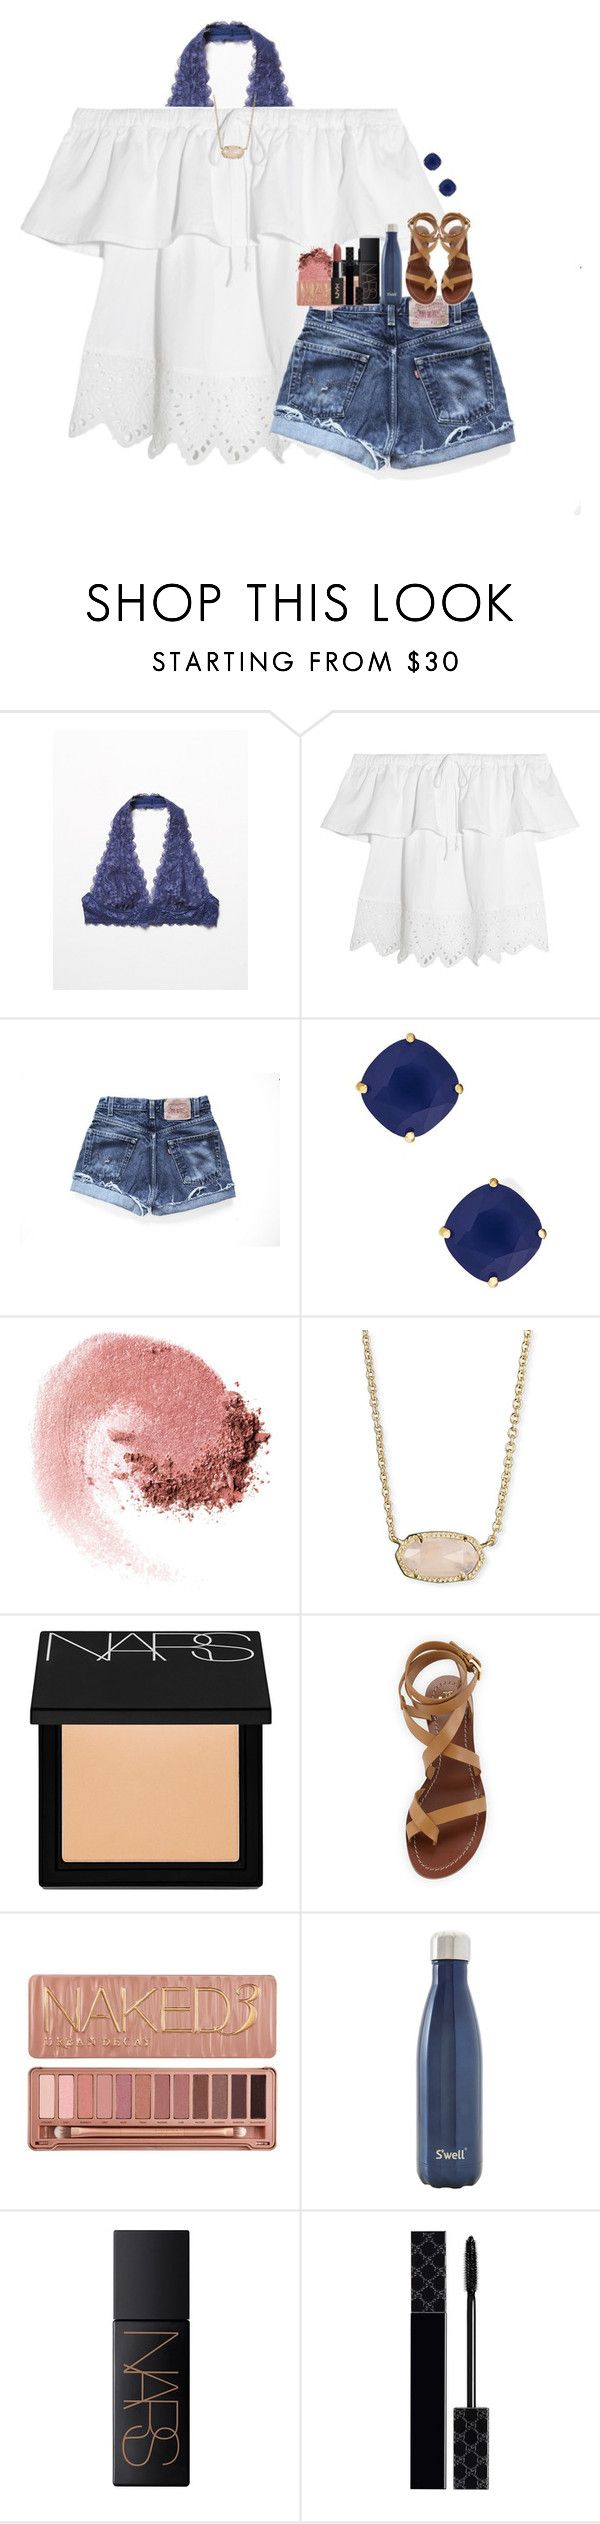 """""""getting schedules!"""" by hmcdaniel01 ❤ liked on Polyvore featuring Free People, Madewell, Levi's, Kate Spade, NARS Cosmetics, Kendra Scott, Tory Burch, Urban Decay, S'well and Gucci"""